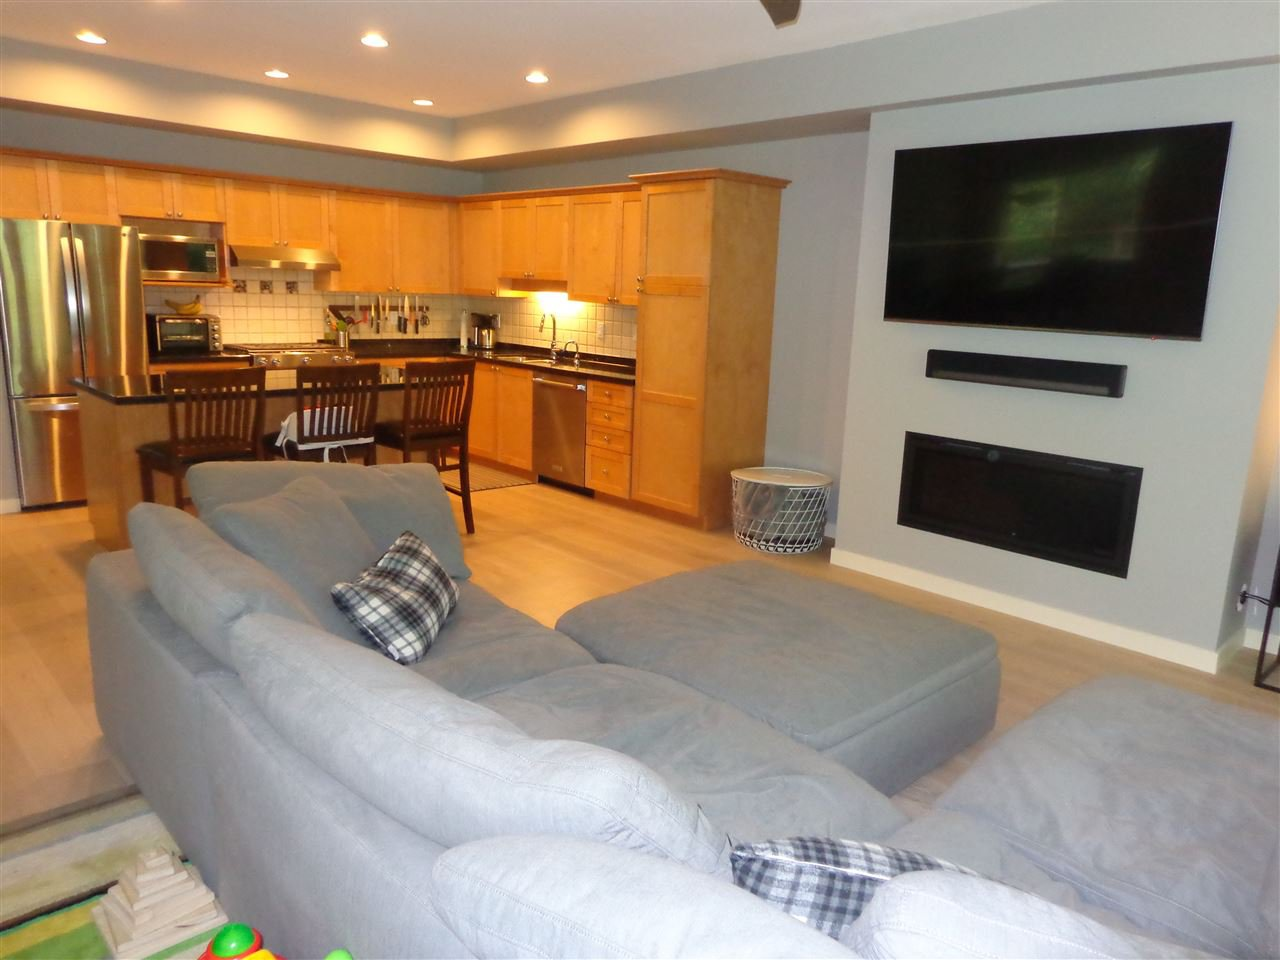 """Photo 11: Photos: 10 8588 168A Street in Surrey: Fleetwood Tynehead Townhouse for sale in """"The Brookstone"""" : MLS®# R2384013"""